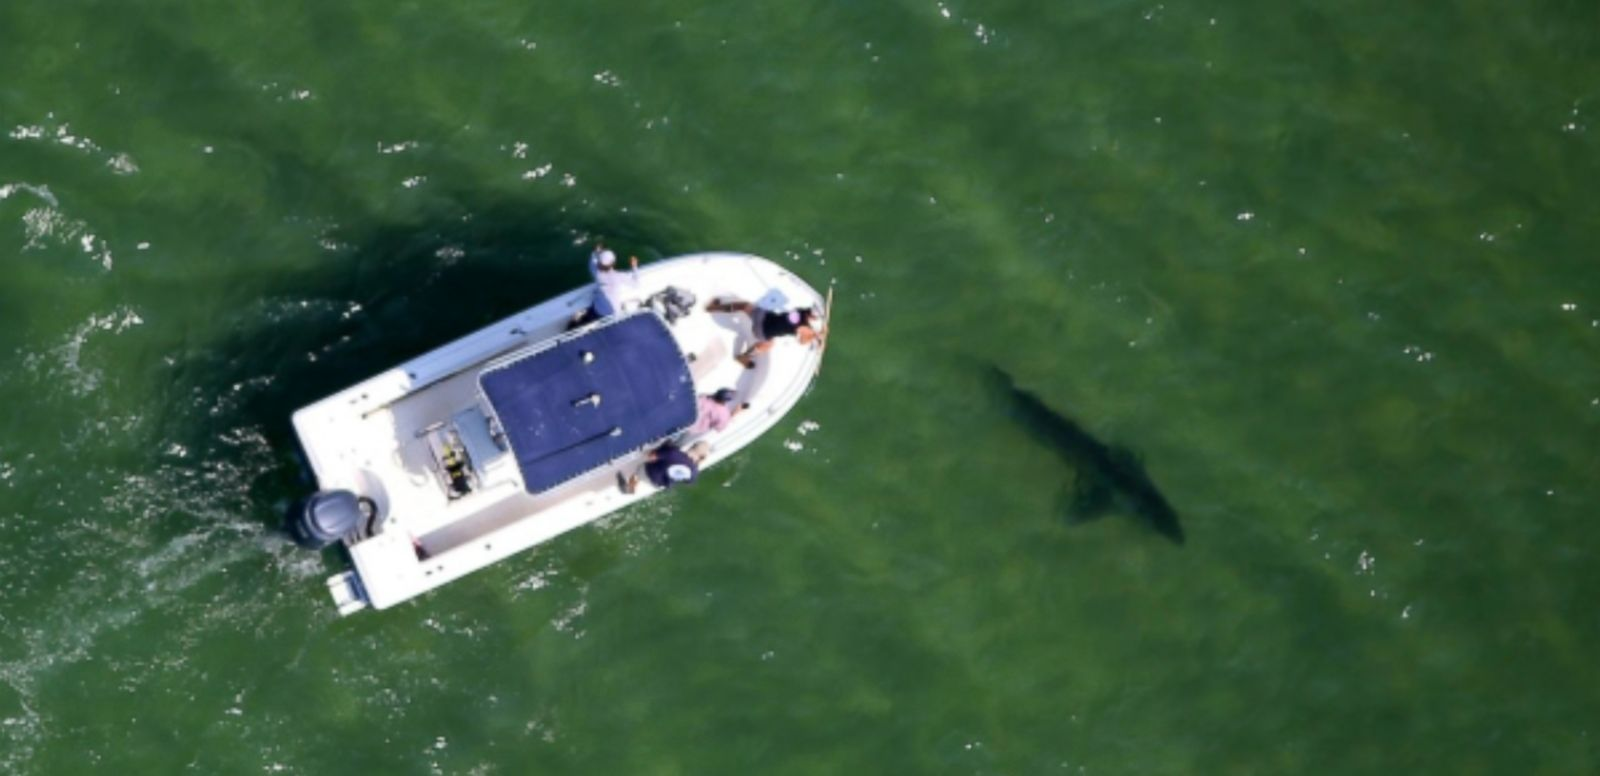 VIDEO: Aerial photos of the sharks were captures by the Atlantic White Shark Conservancy, which is conducting a 5-year study of Great Whites in the Cape Cod area.